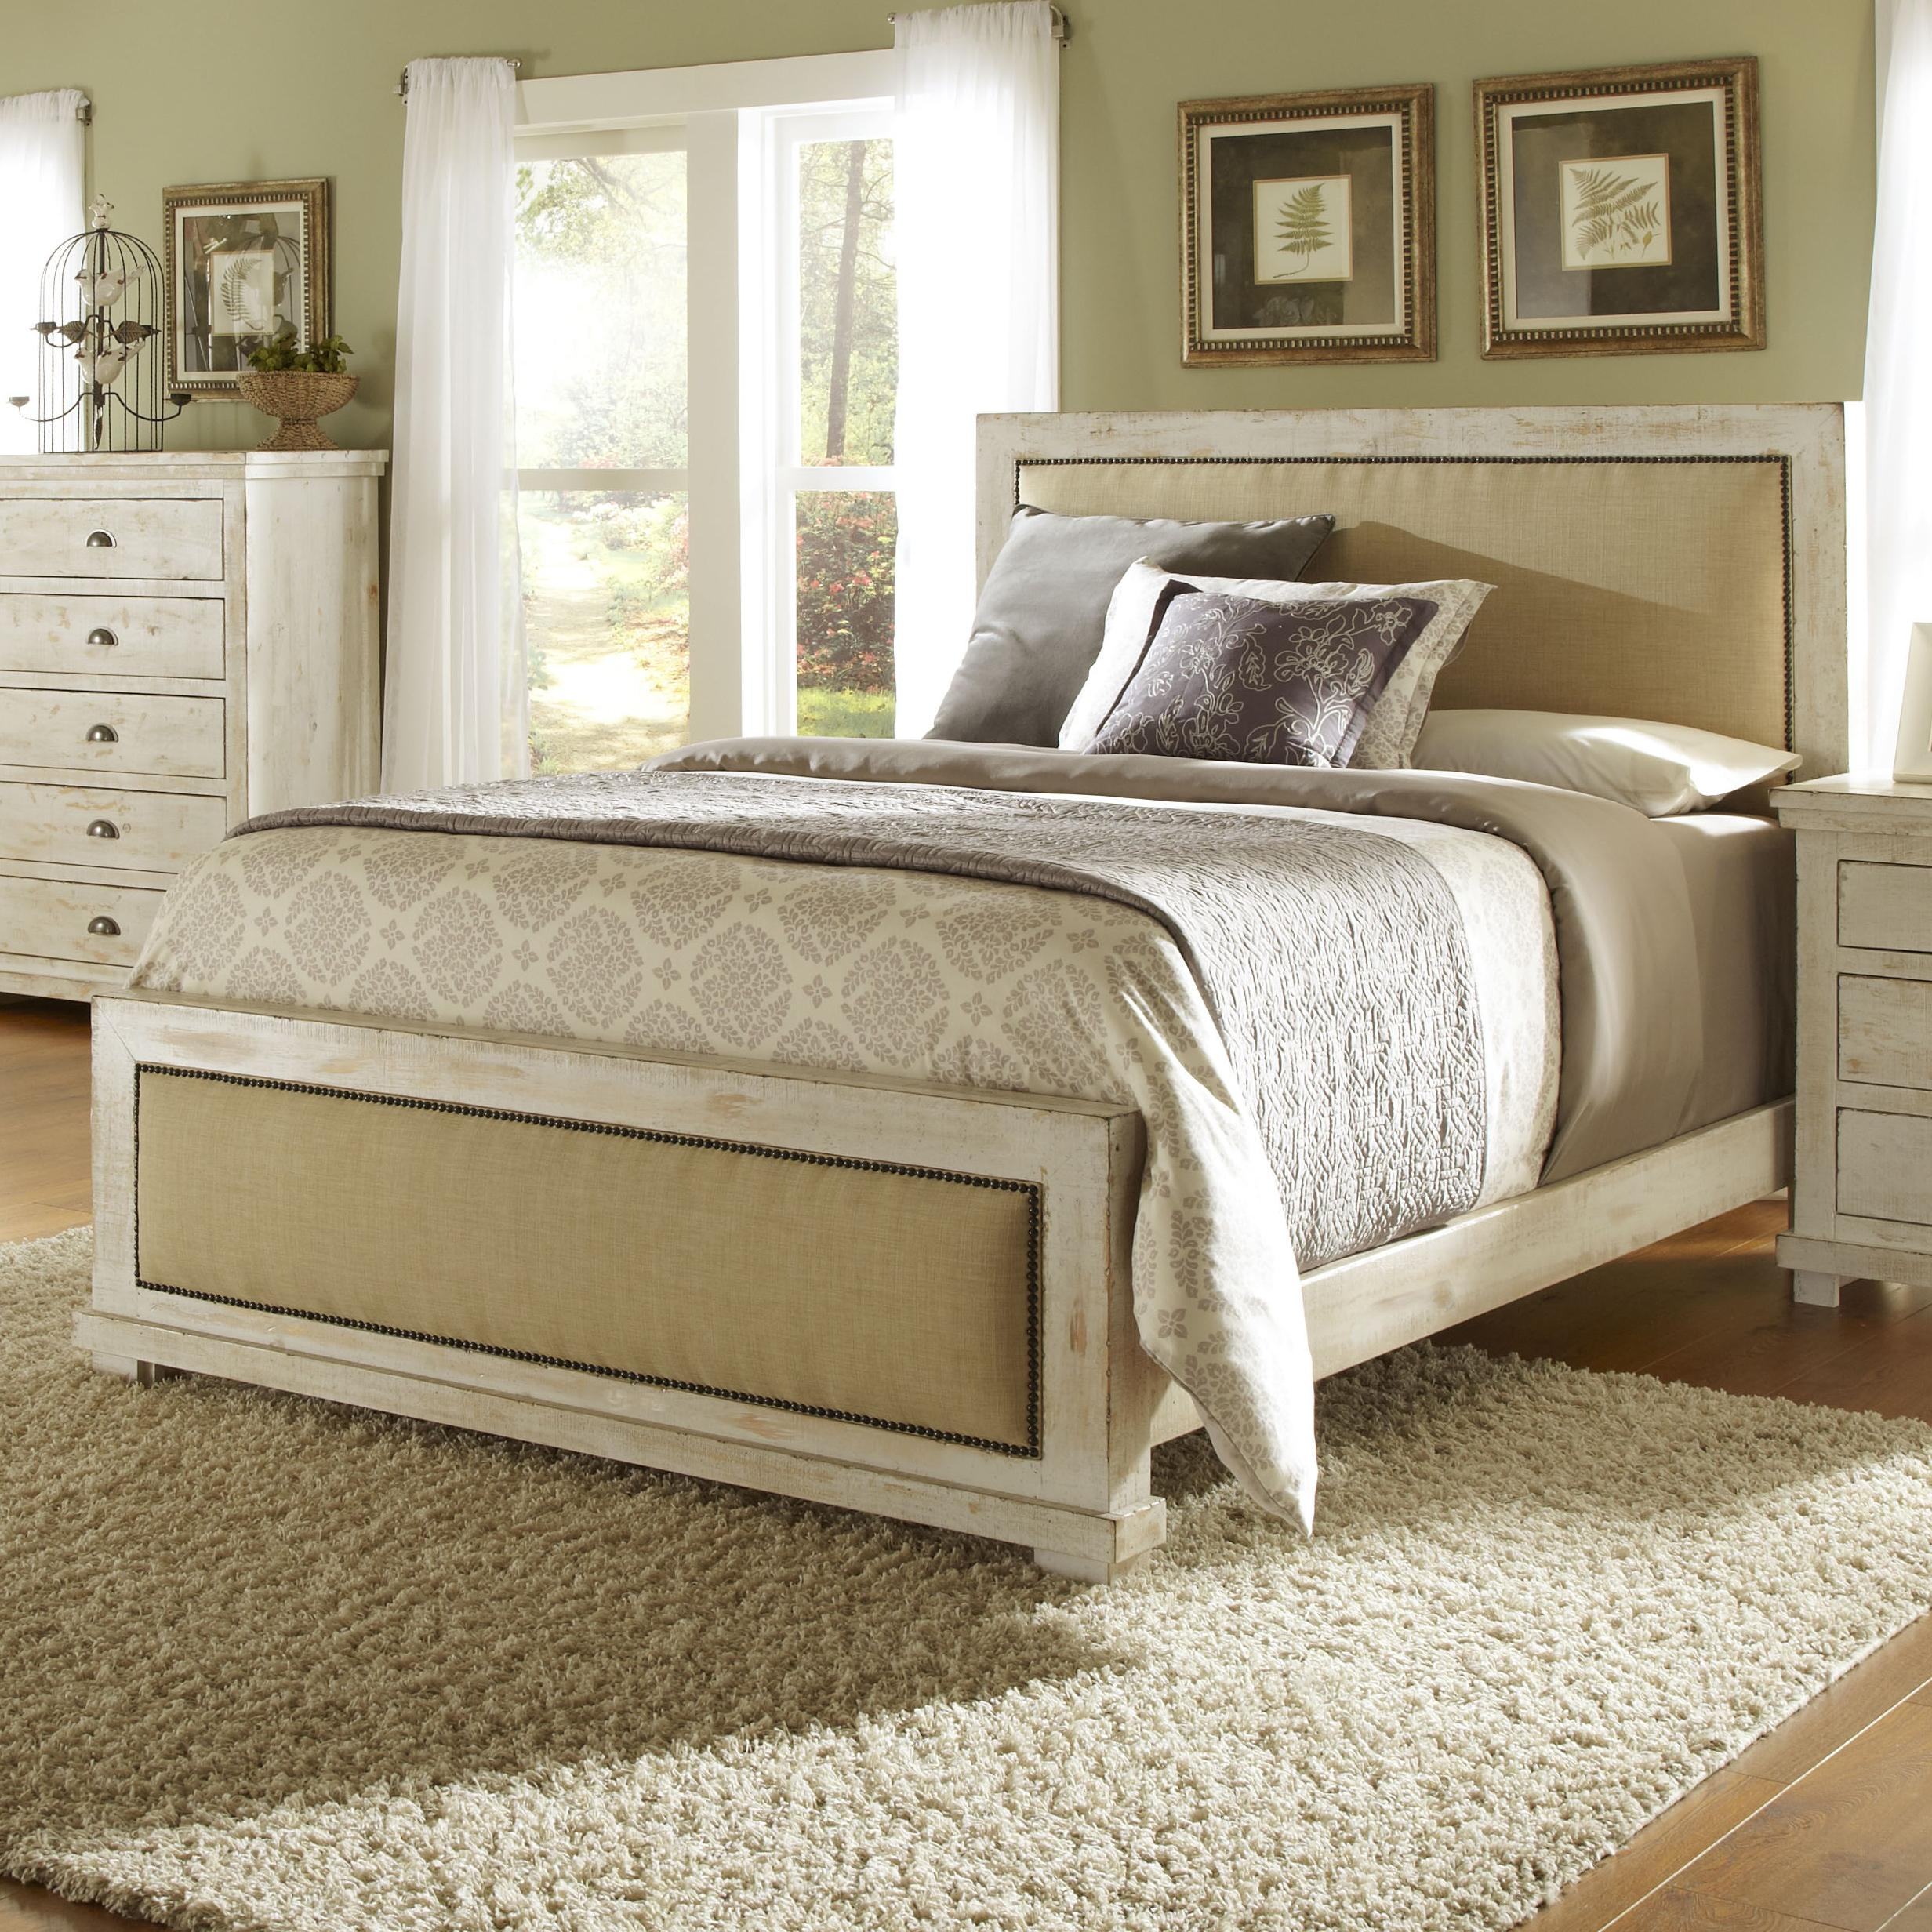 progressive furniture willow queen upholstered bed with distressed pine frame ahfa upholstered bed dealer locator - Distressed Bed Frame